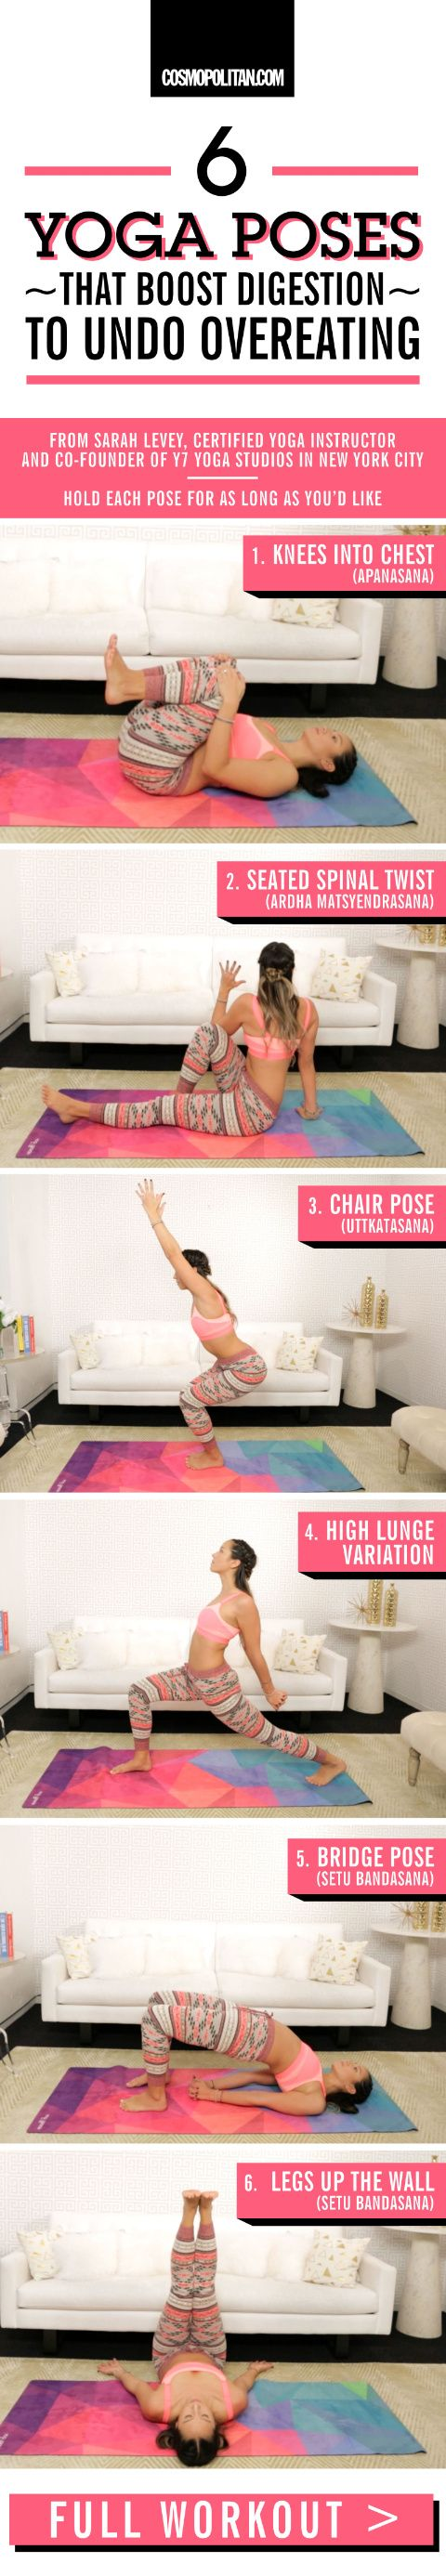 YOGA POSES THAT UNDO OVEREATING.